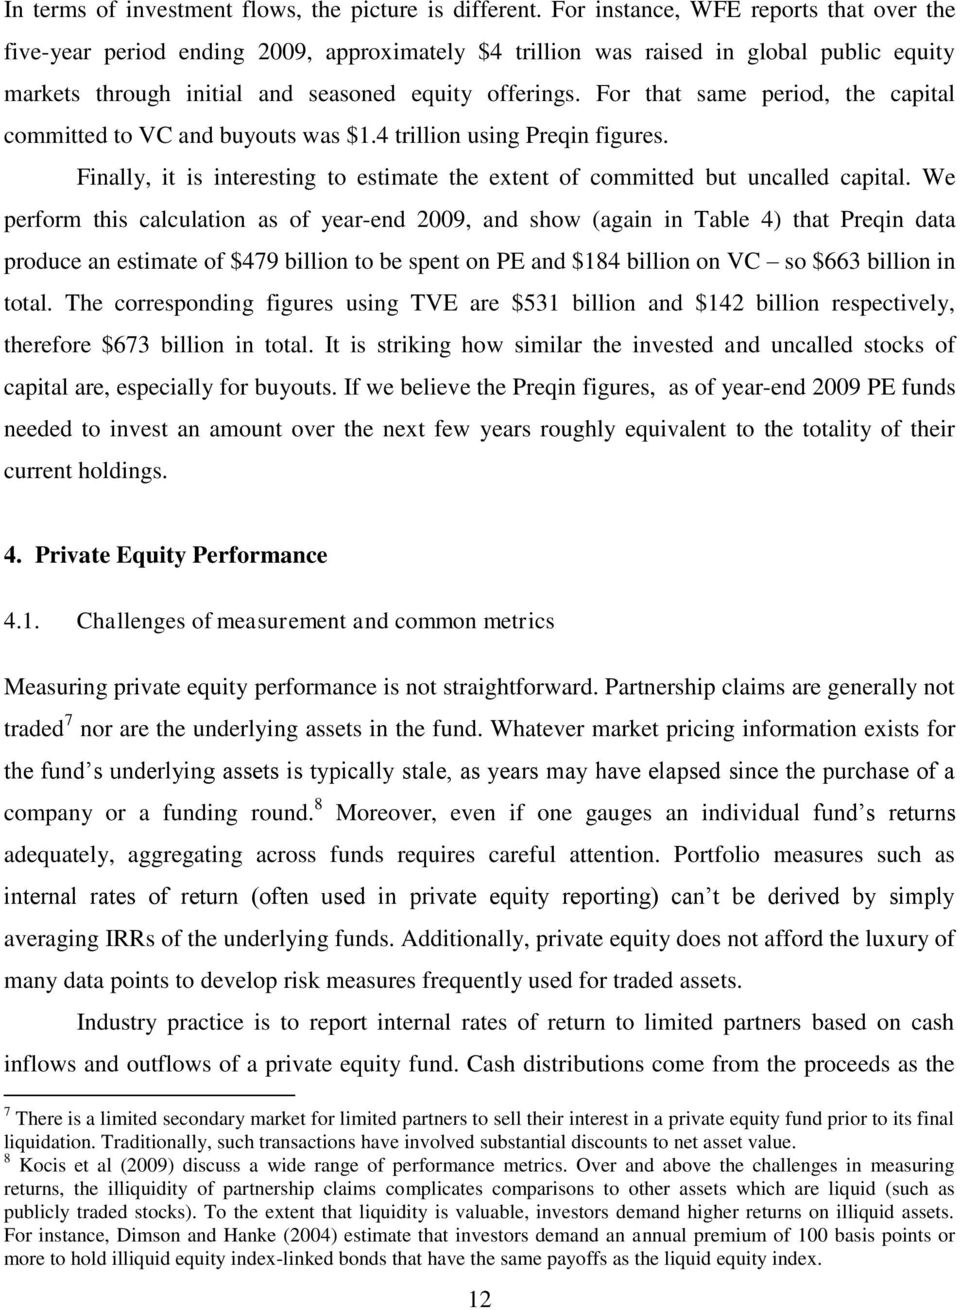 A White Paper on Private Equity Data and Research - PDF